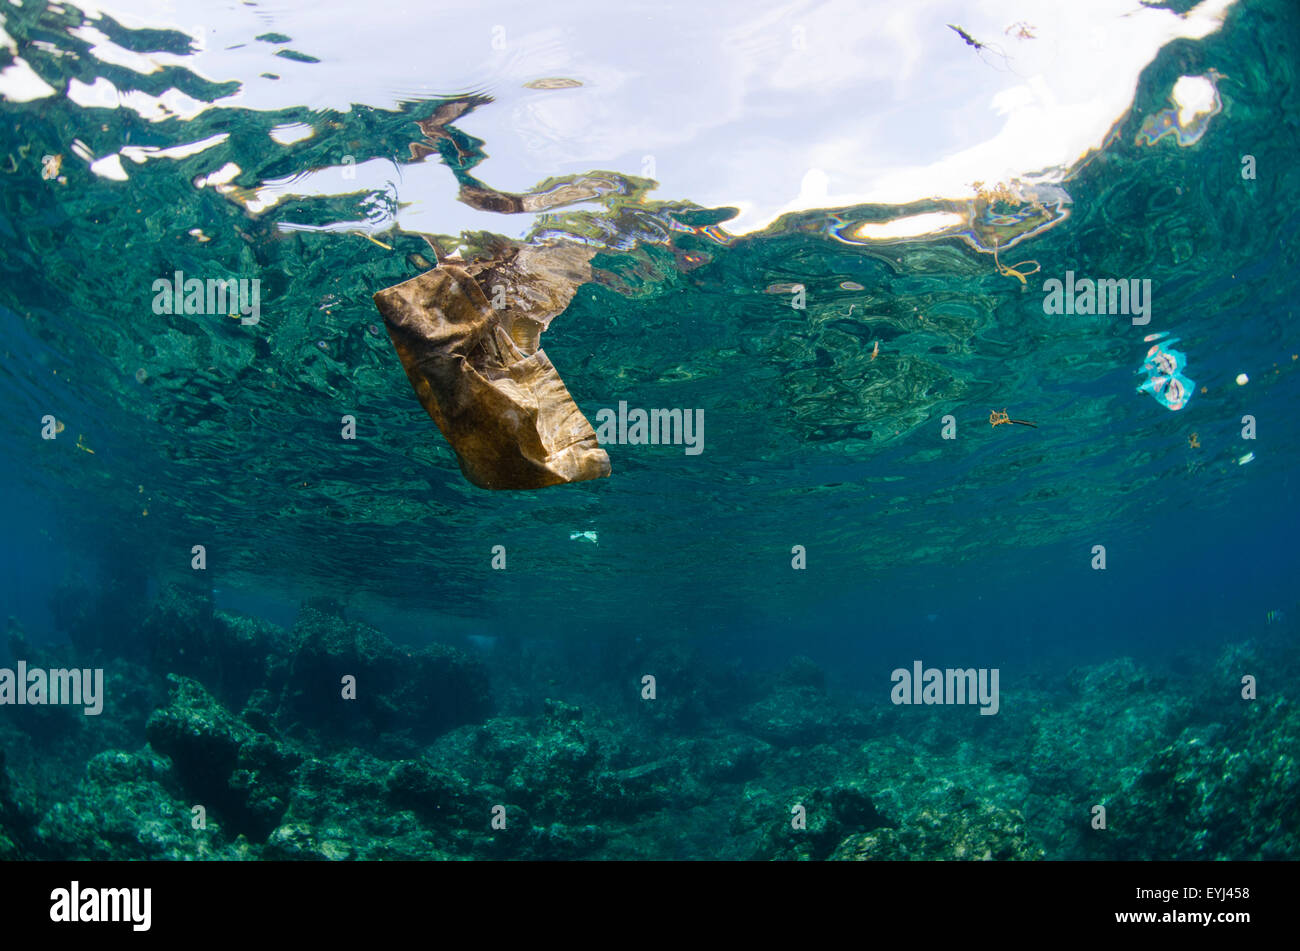 Debris floating in the water column including plastic and other garbage, Tulamben, Bali, Indonesia, Pacific Ocean - Stock Image